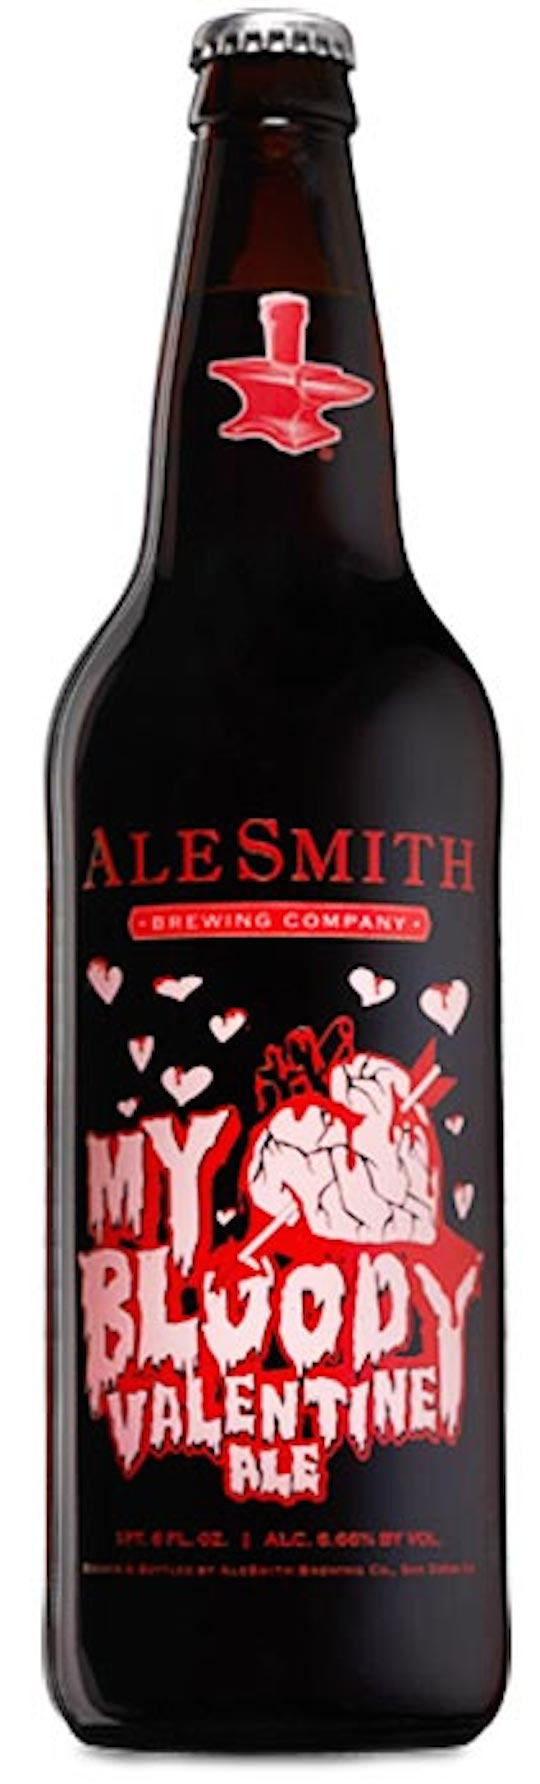 Alesmith_Bloody